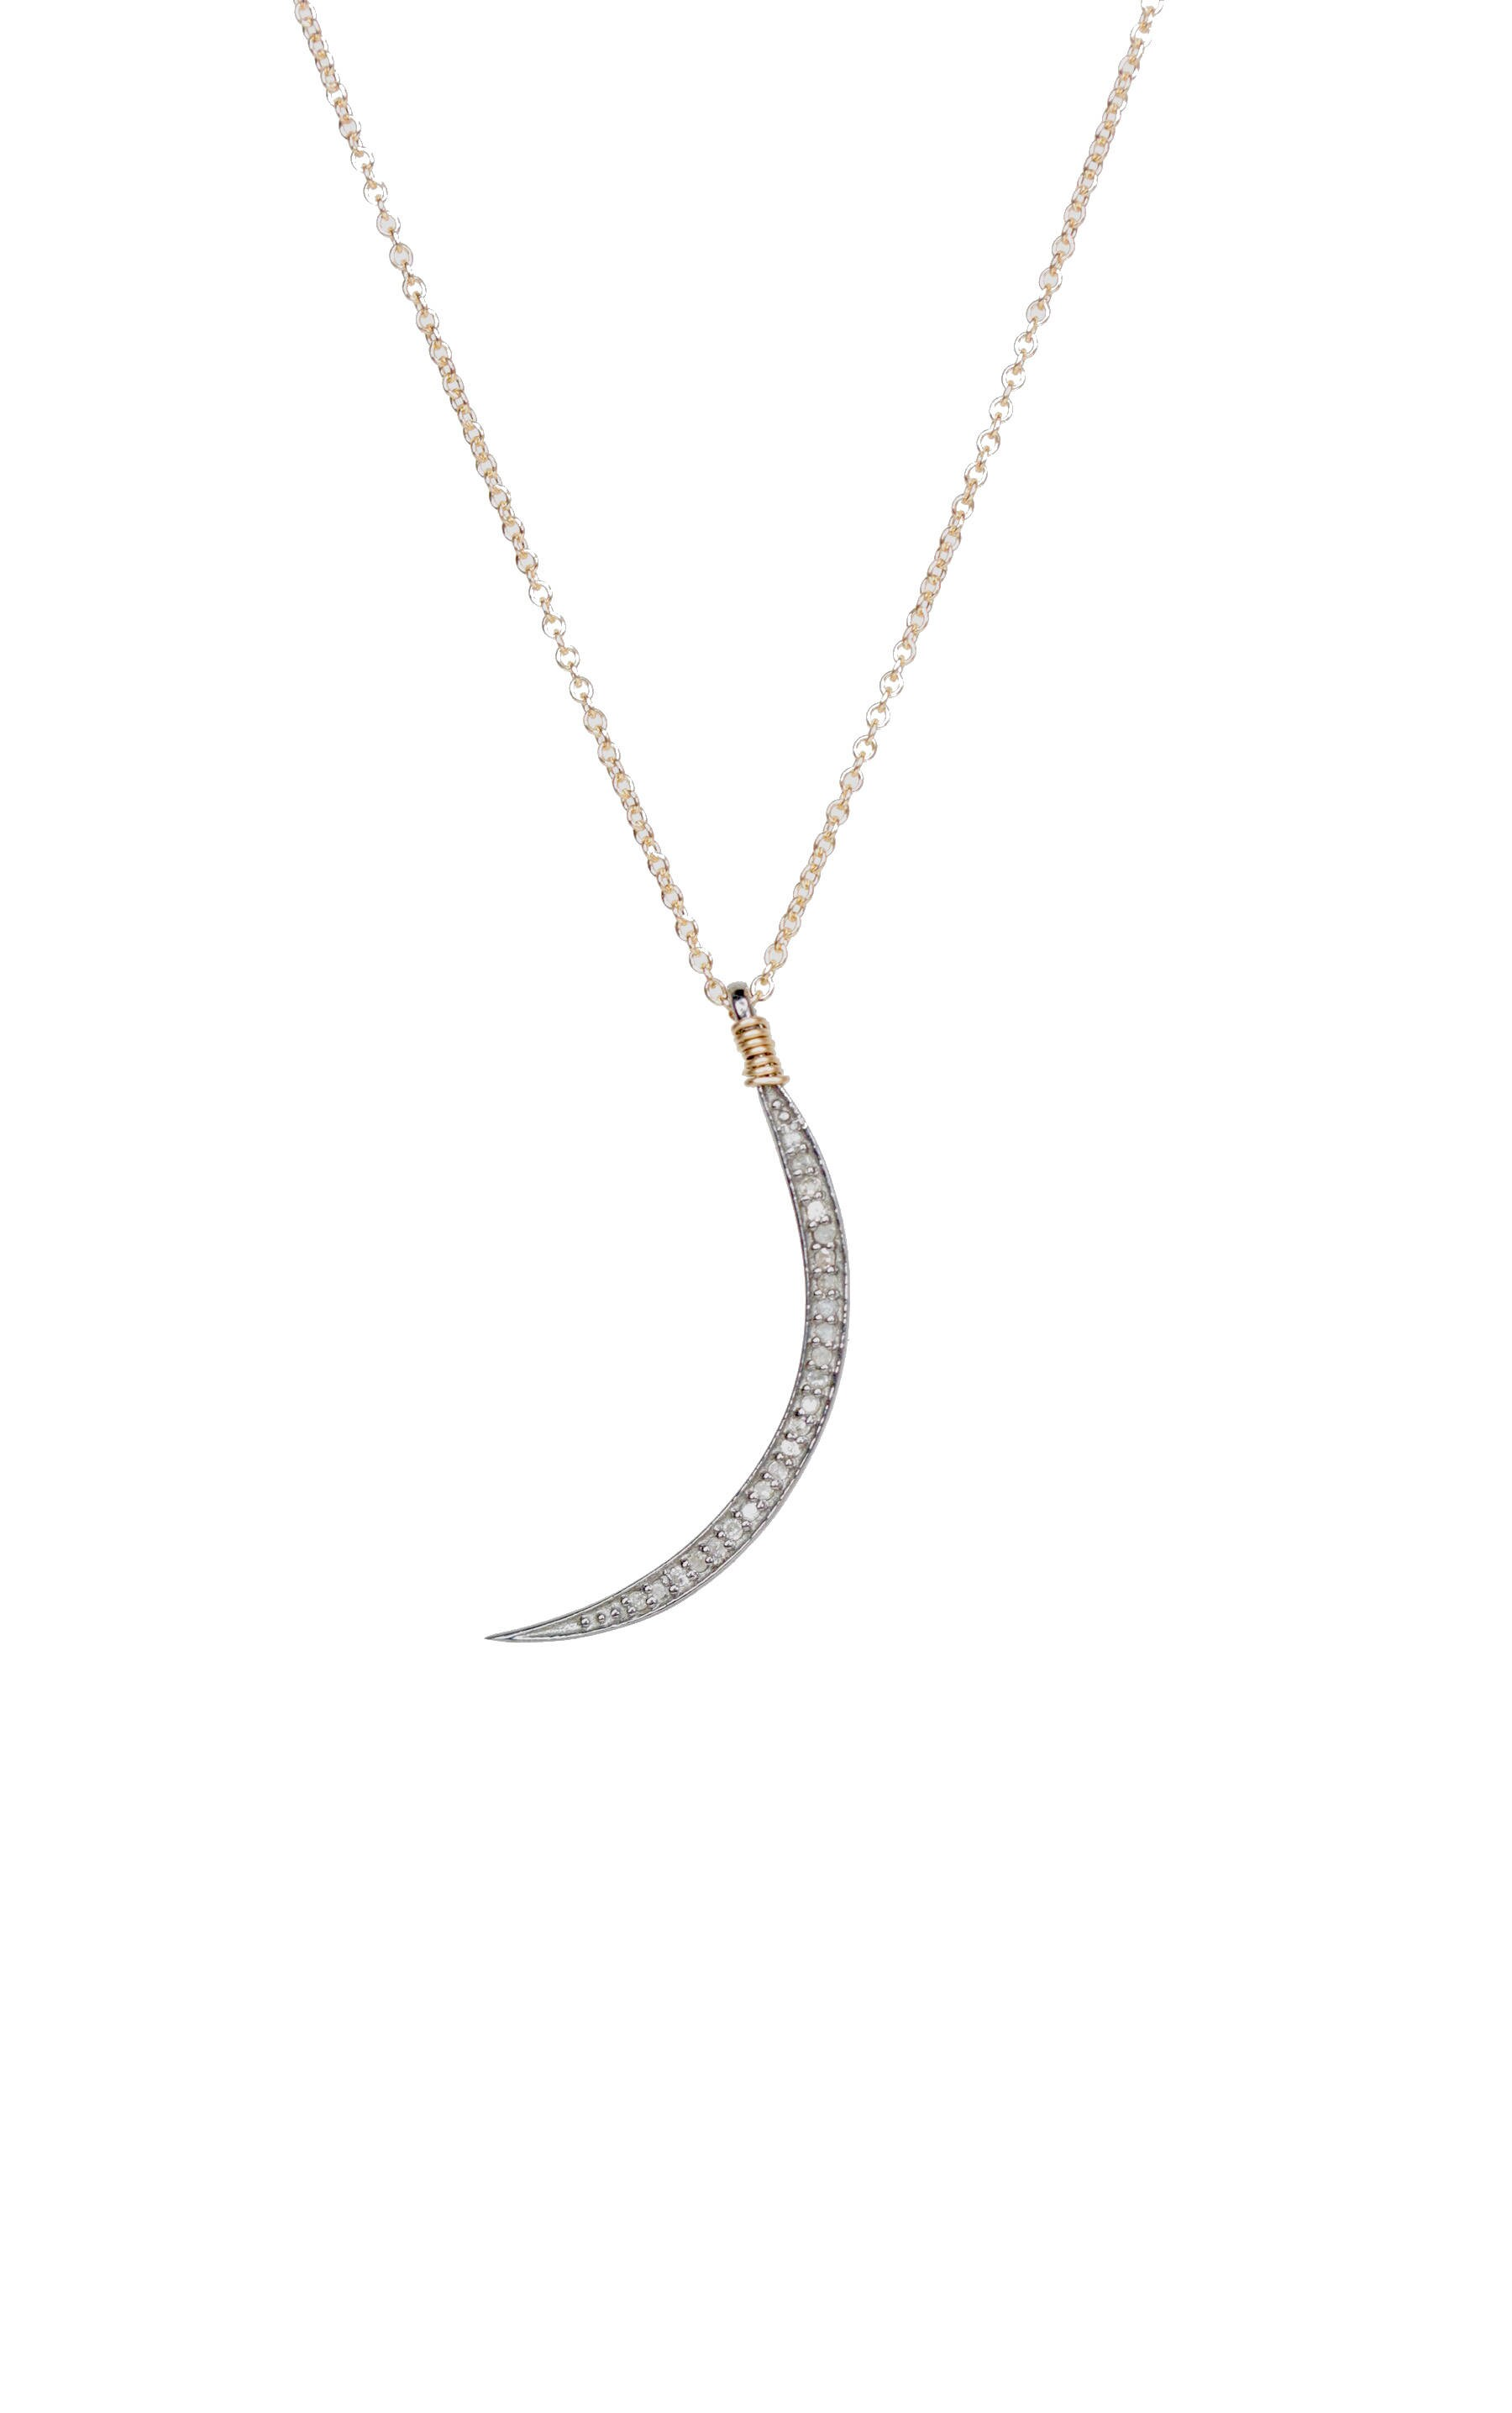 90f7bc4e7bb56 Diamond Thin Crescent Moon Necklace Delicate Mixed Metal Sterling ...